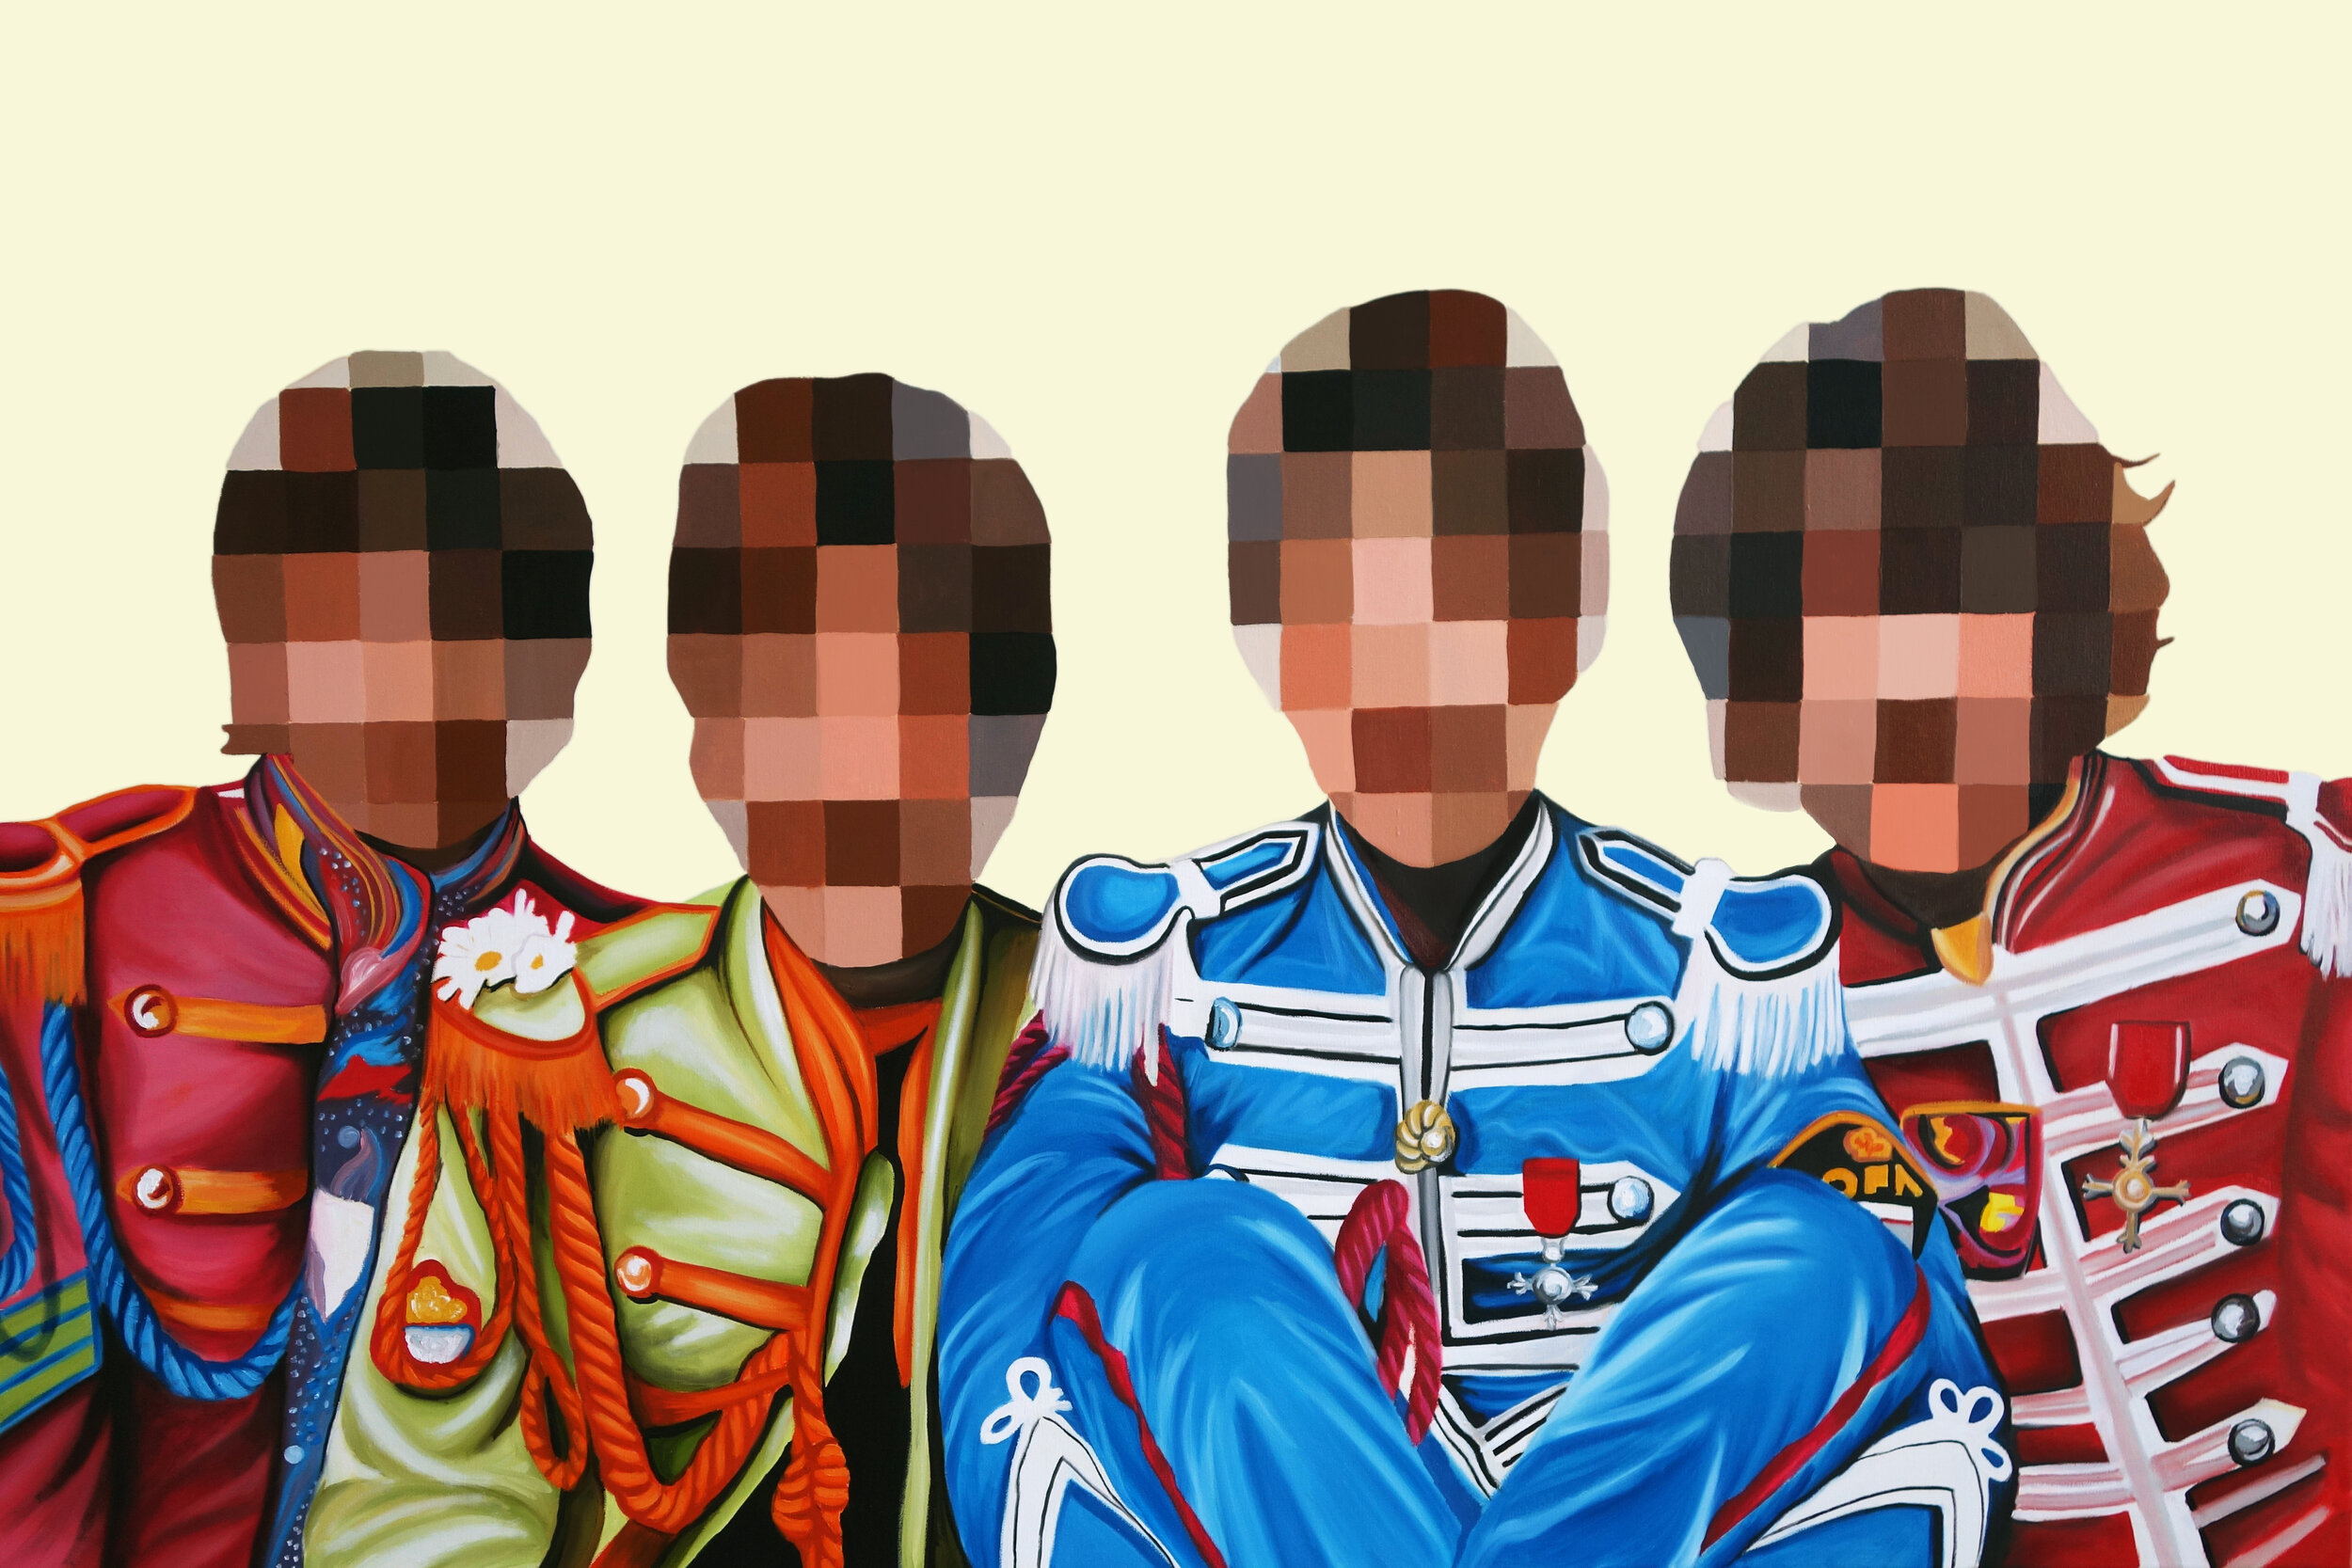 "Sgt. Pepper's Lonely Hearts Club Band   Oil & Acrylic on Canvas  36 x 60""  2019   Collected"